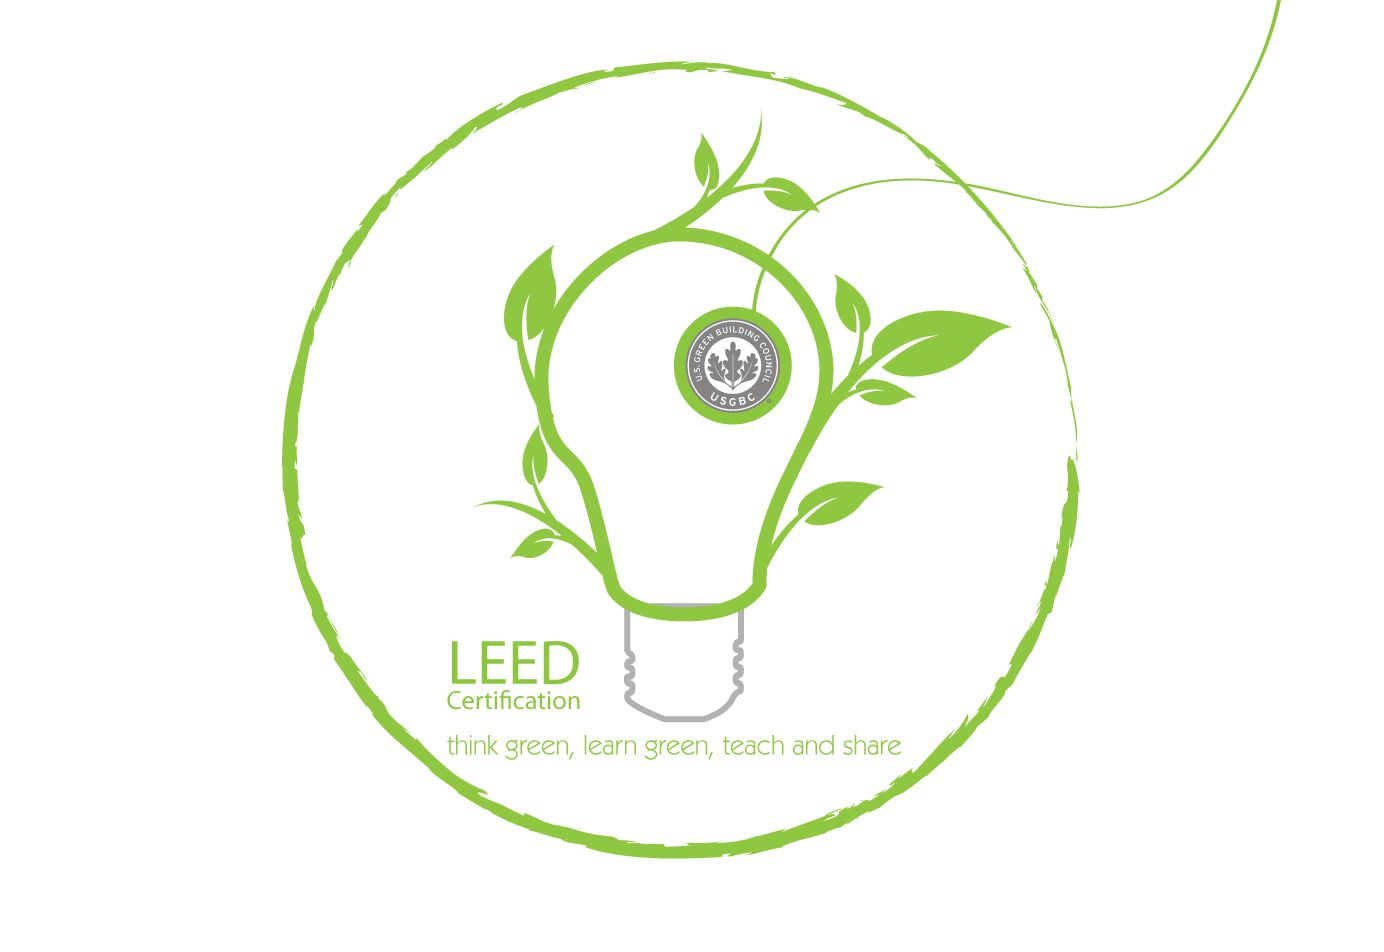 A step by step guide to achieving leed certification what are the benefits of leed certification xflitez Images